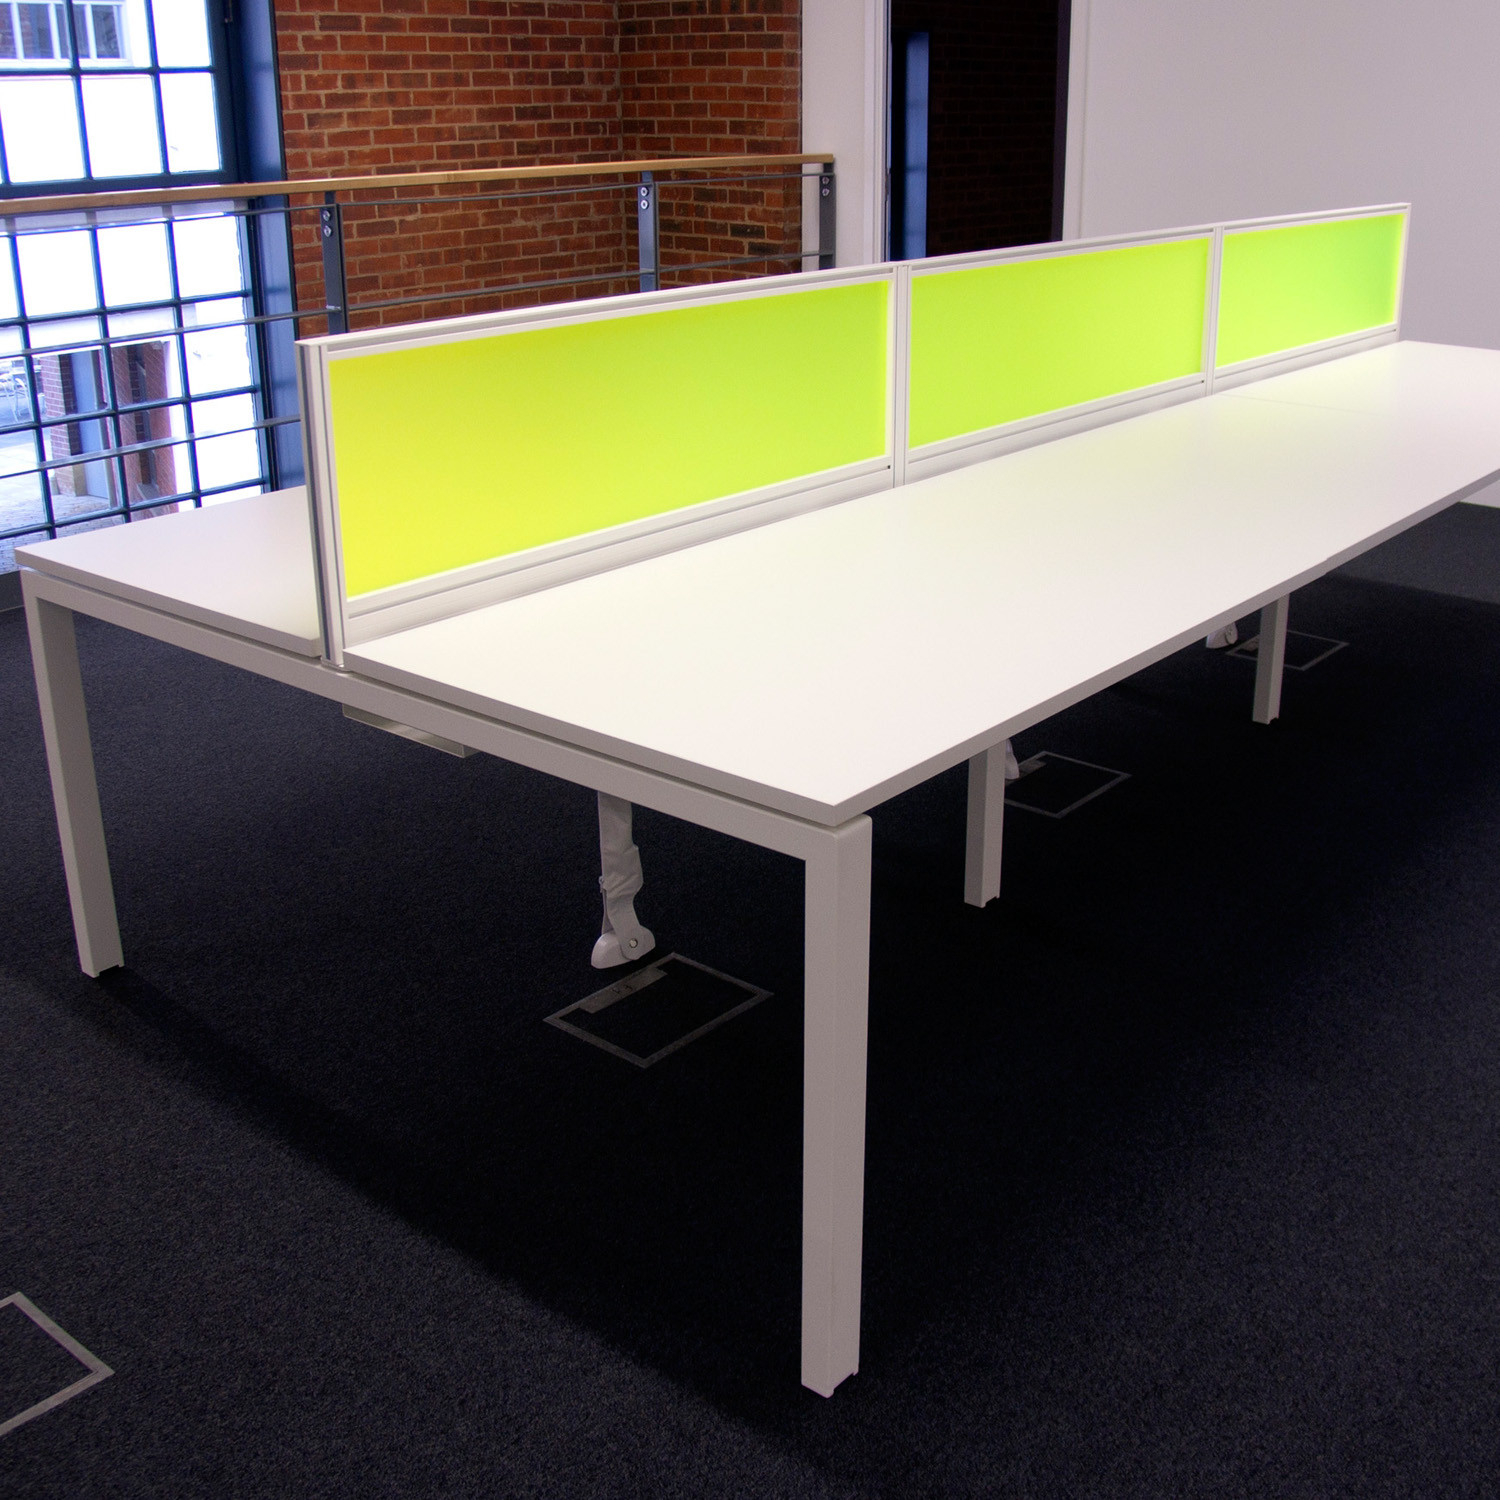 Unite SE Bench Desk with desk screen